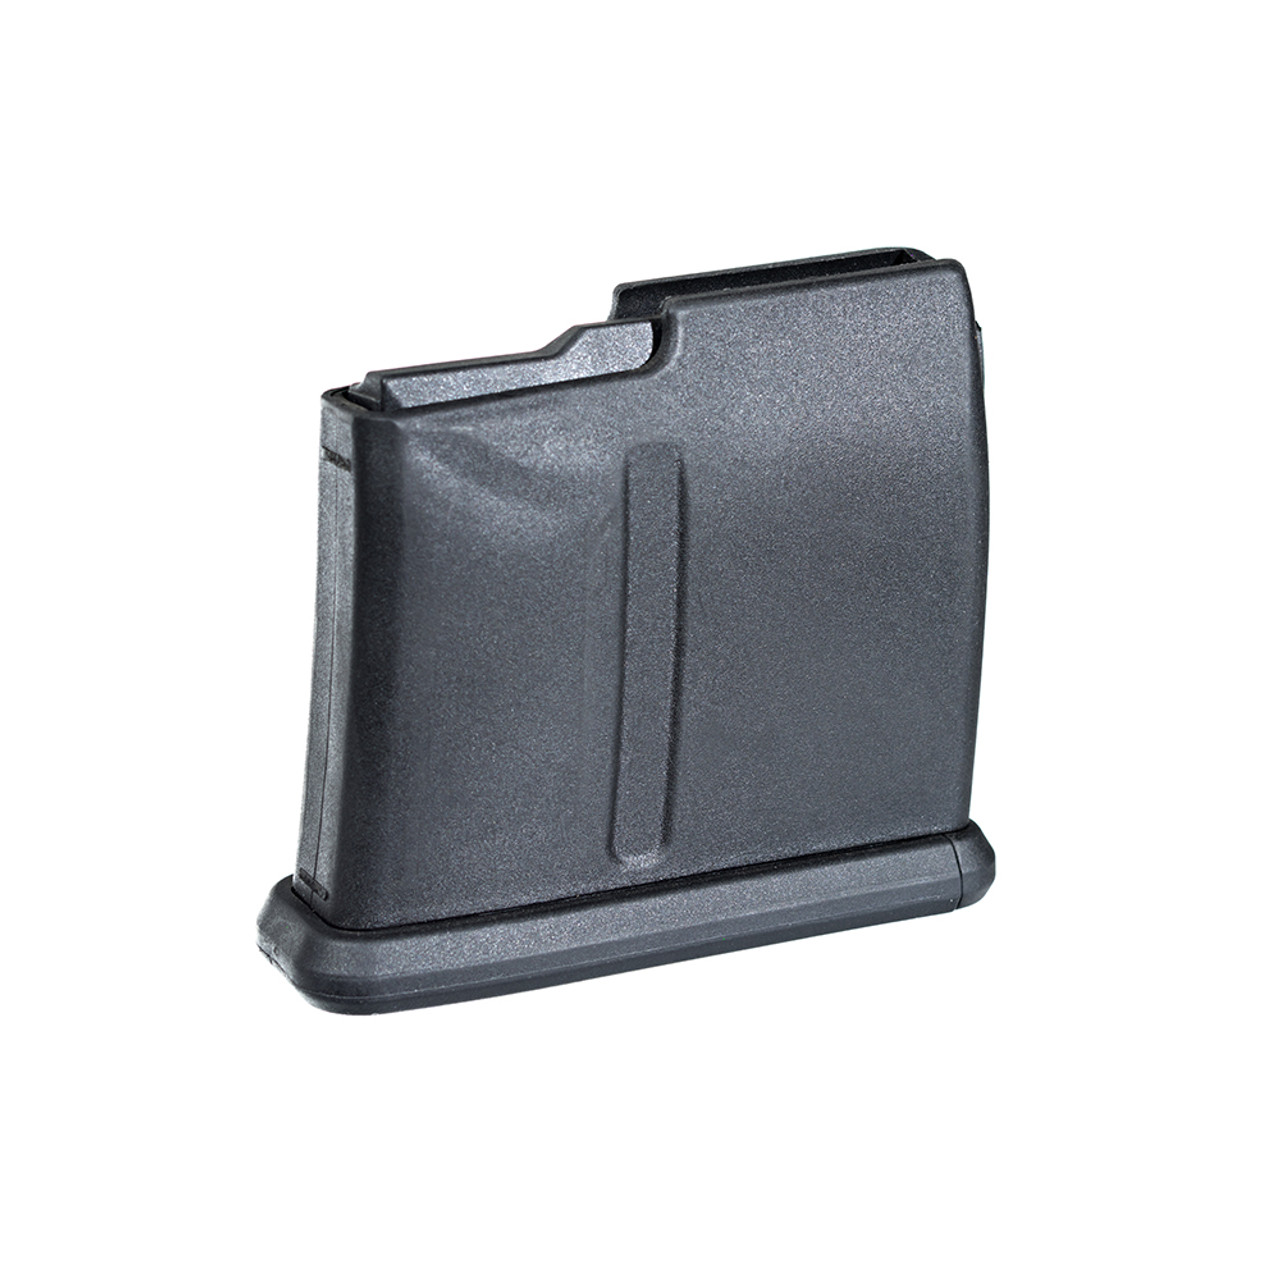 Archangel® Magnum Caliber .300 WIN, 7mm Rem Magnum TYPE C Magazine for AA700MLA & AA1500MLA Stocks (6) Rd with (5) Rd Limiter- Black Polymer